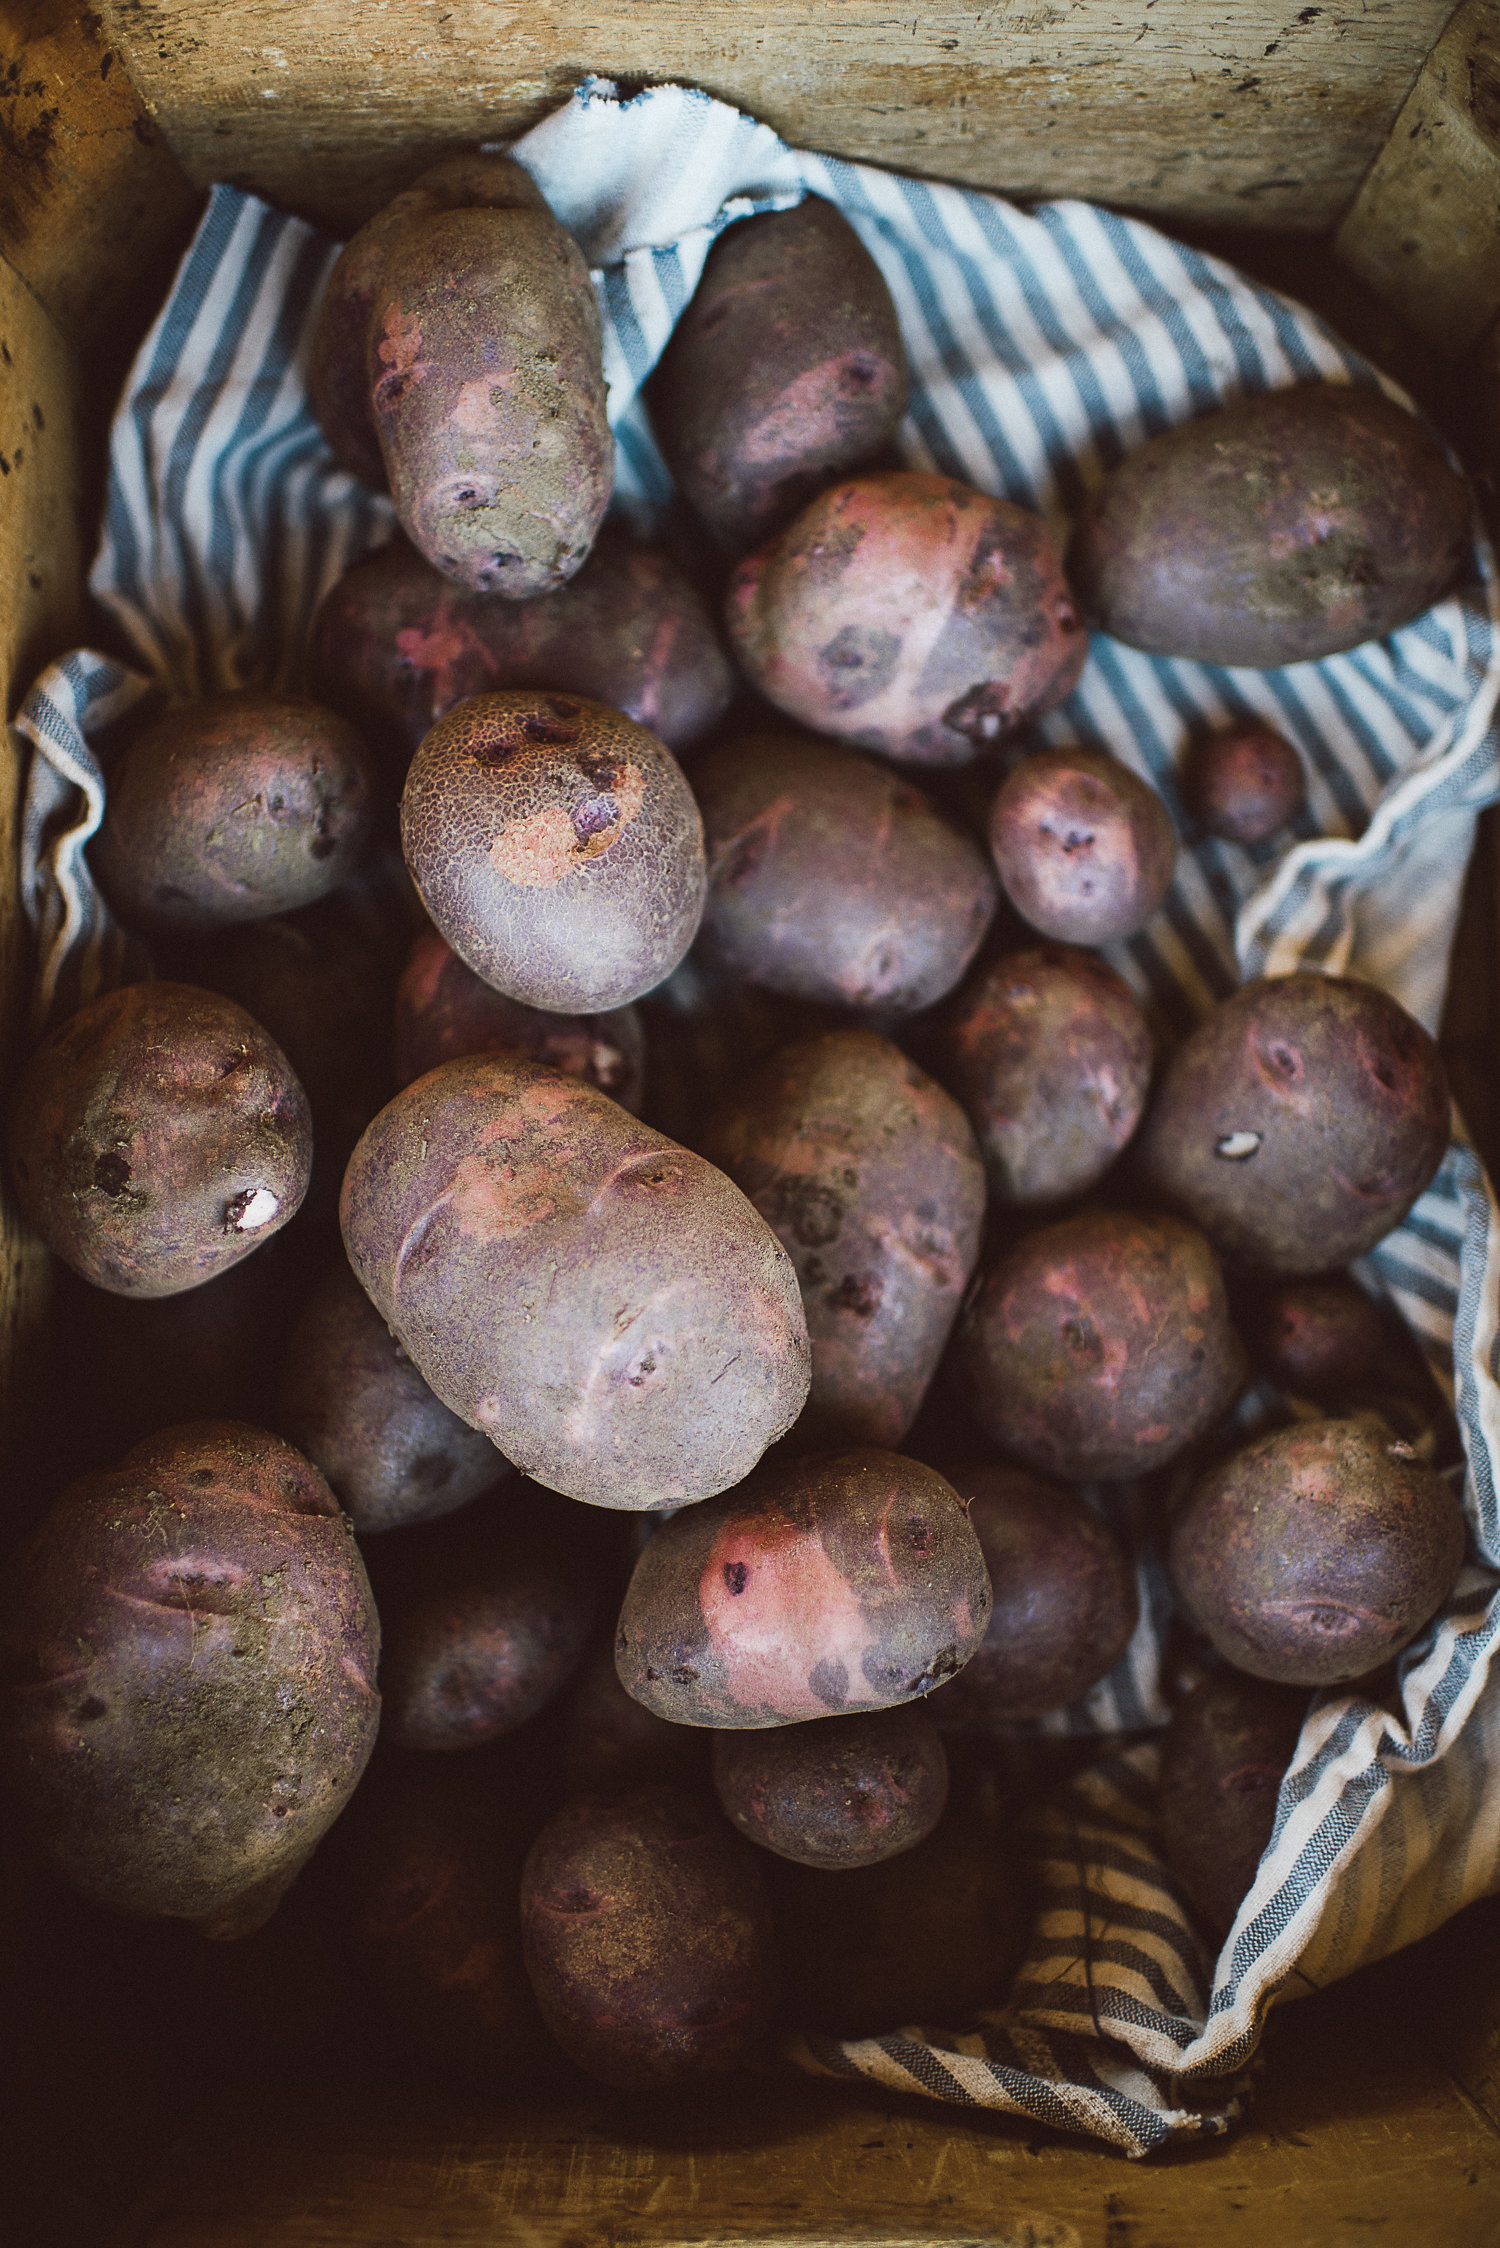 Purple viking potatoes, our favorite all-purpose potato for roasting, mashing, or frying.